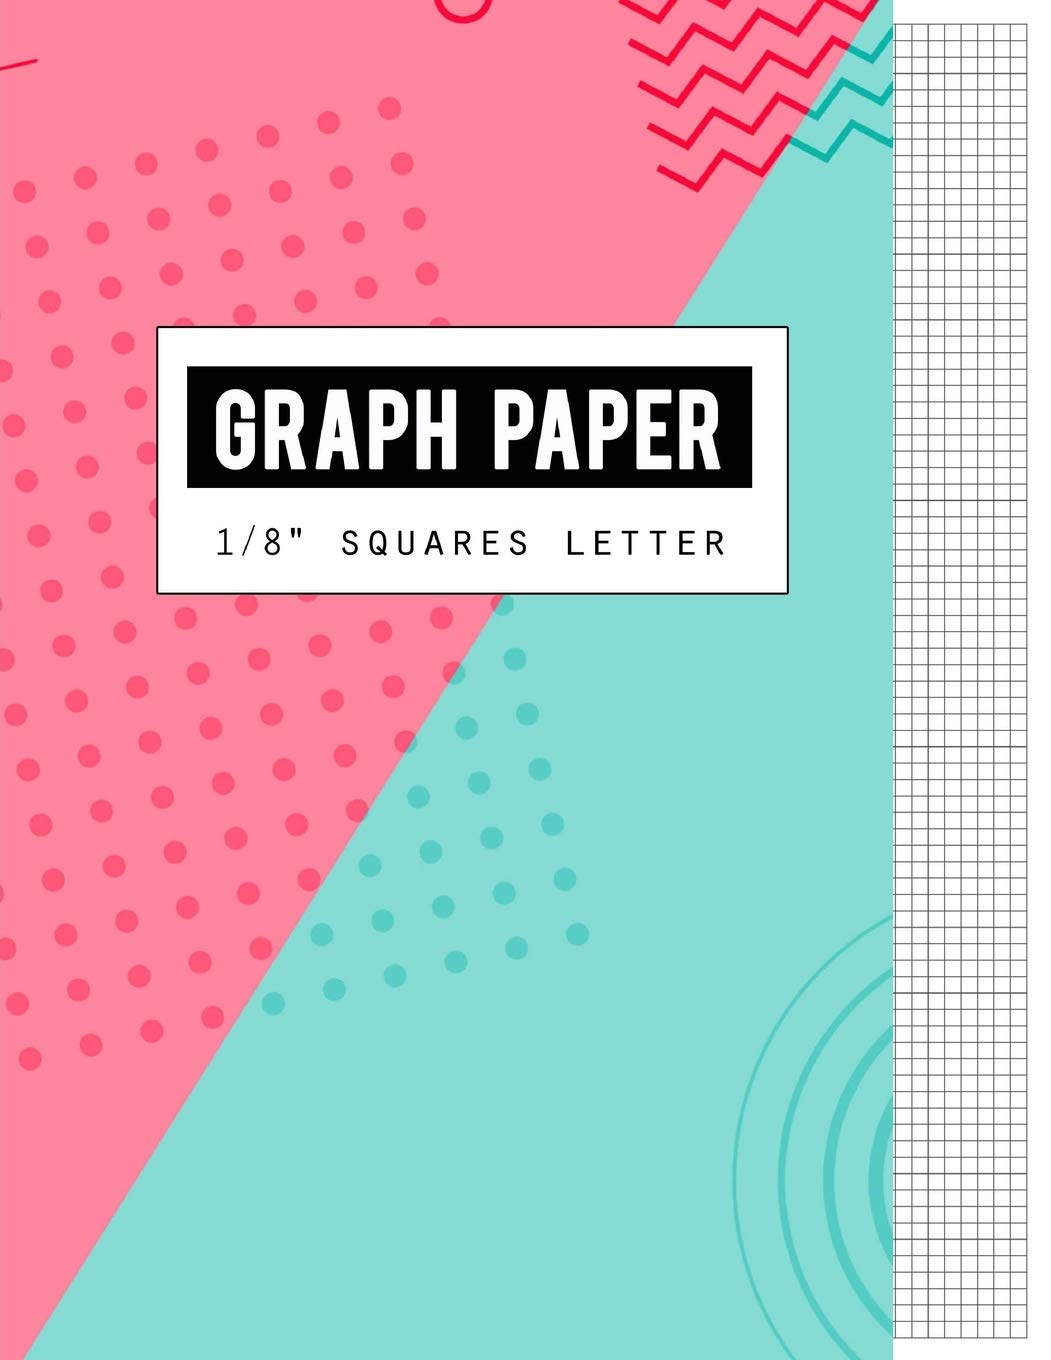 graph paper 1 8 squares black lines law ruled letter writing